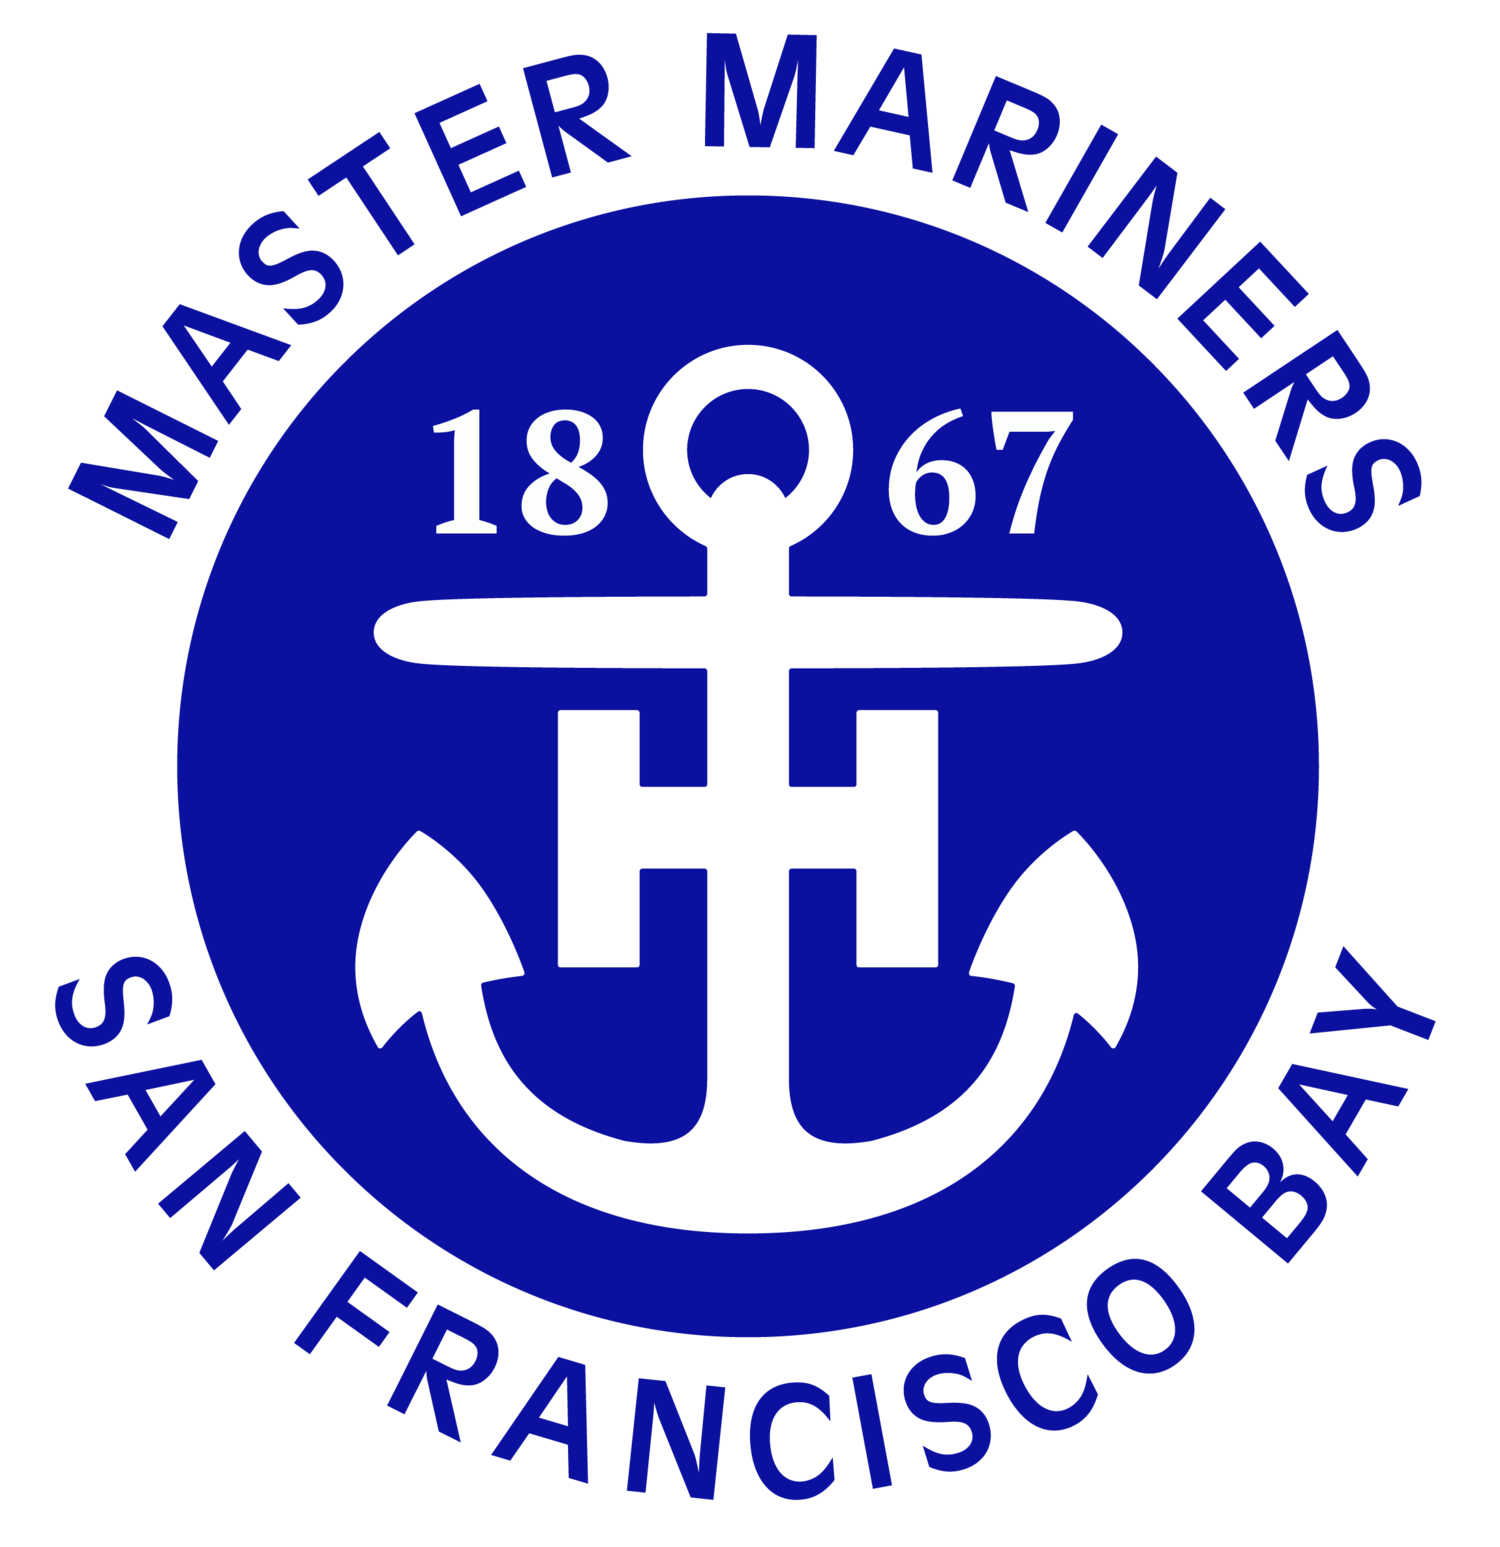 Master Mariners Benevolent Association